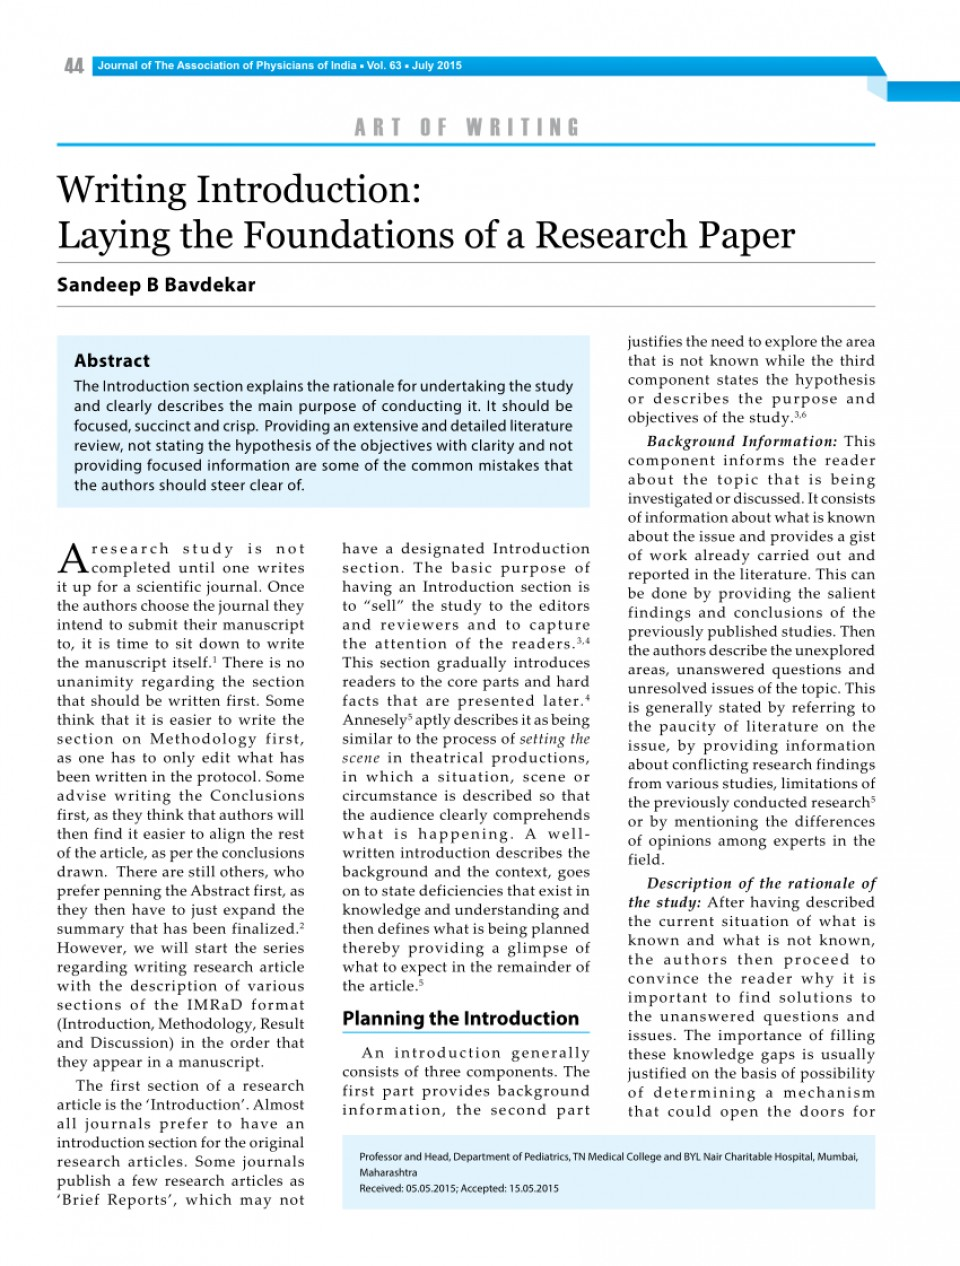 006 Example Of An Introduction For Research Paper Excellent A Thesis About Bullying Examples Writing In Technology 960